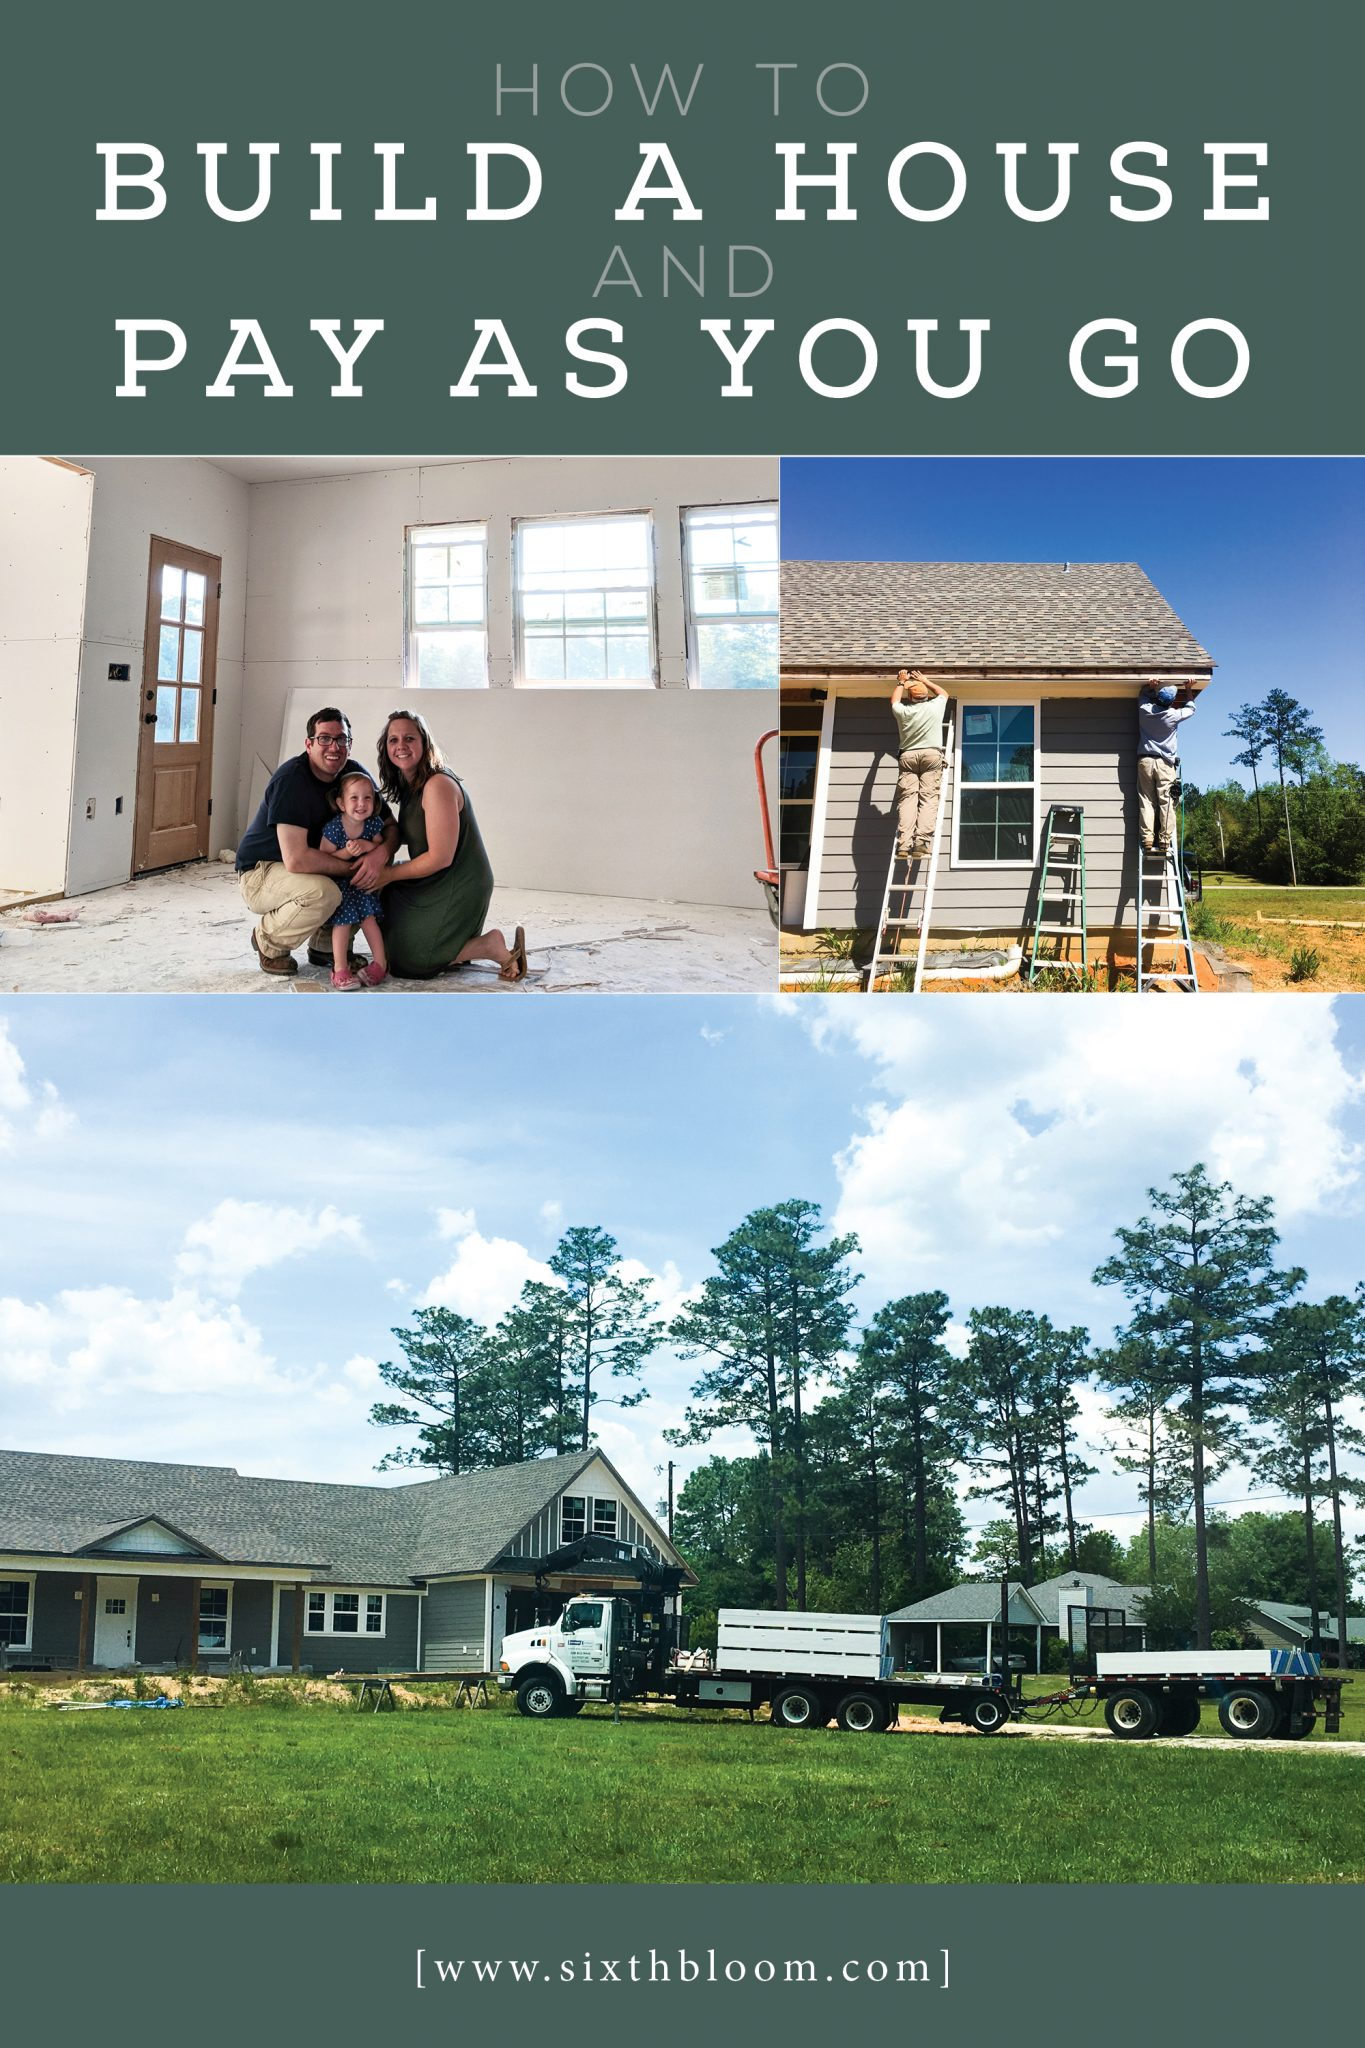 how to build a house and pay as you go